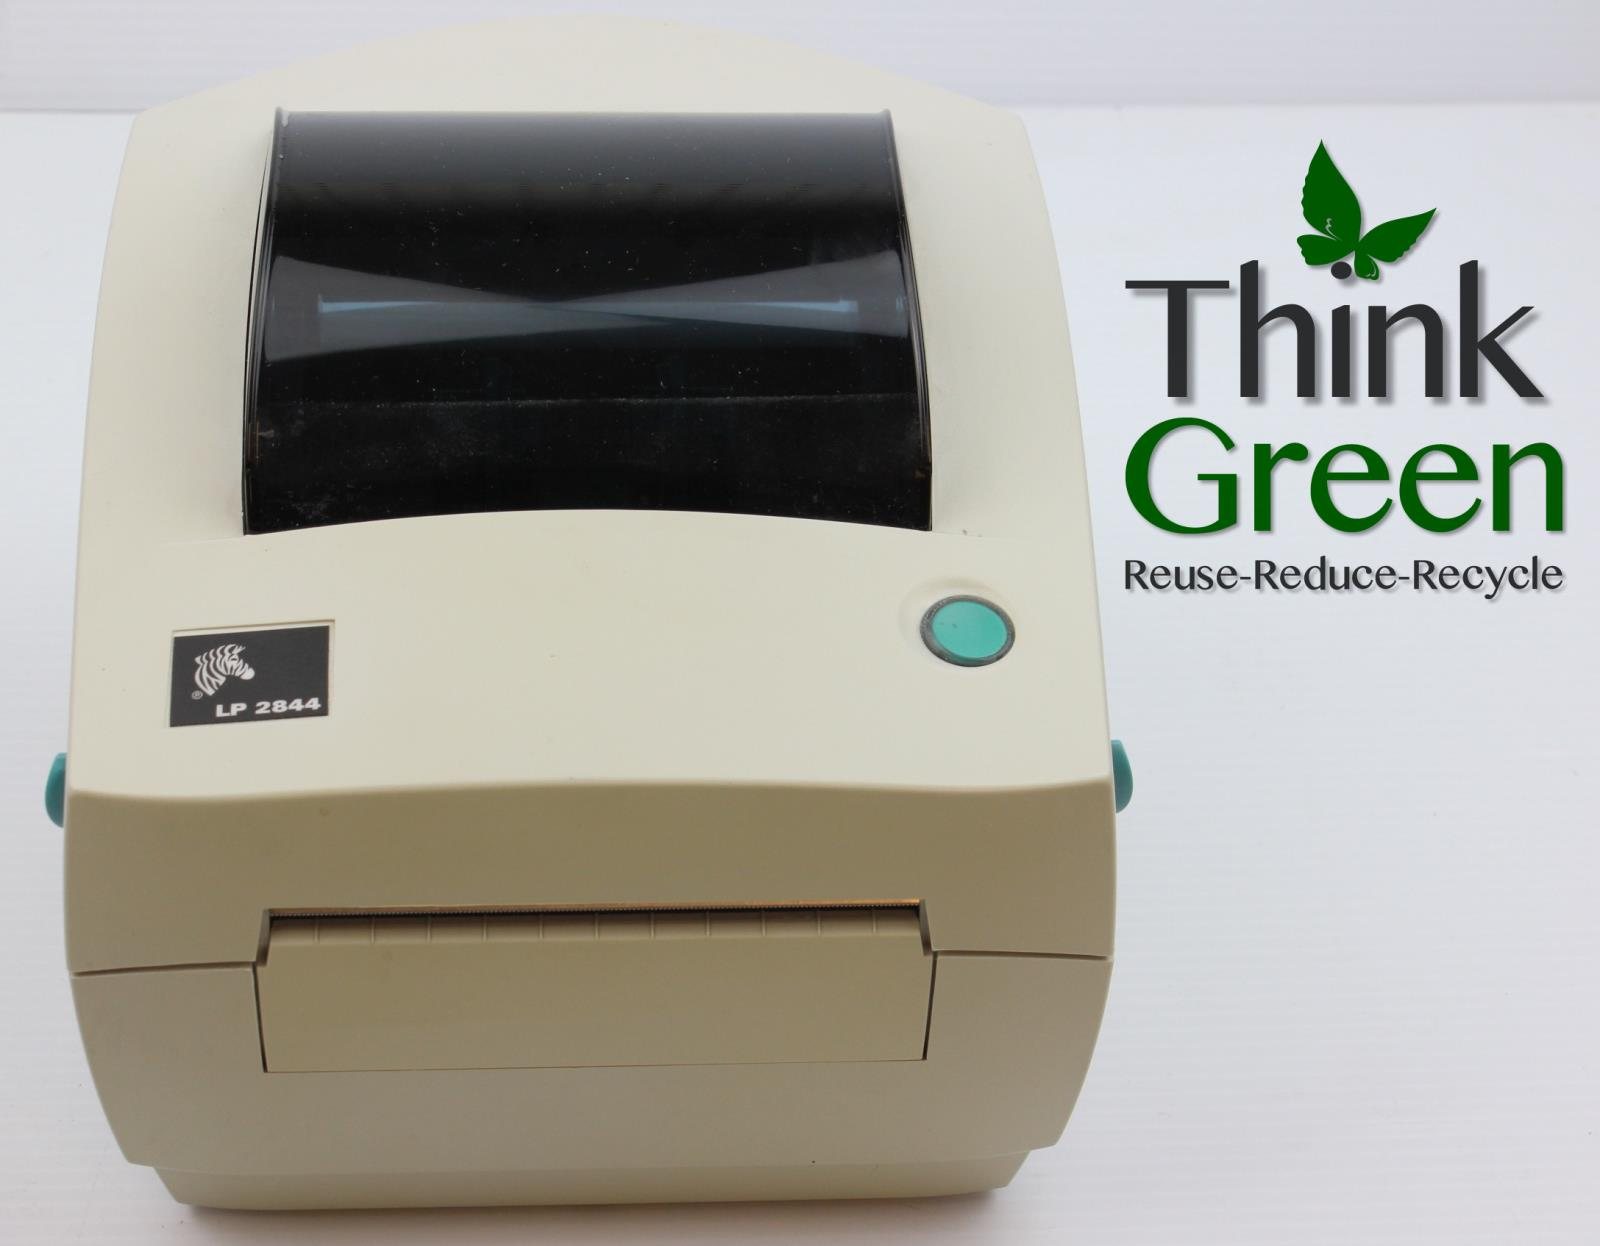 Zebra LP 2844 Yellowed Direct Thermal Label Printer for  Shipping Others